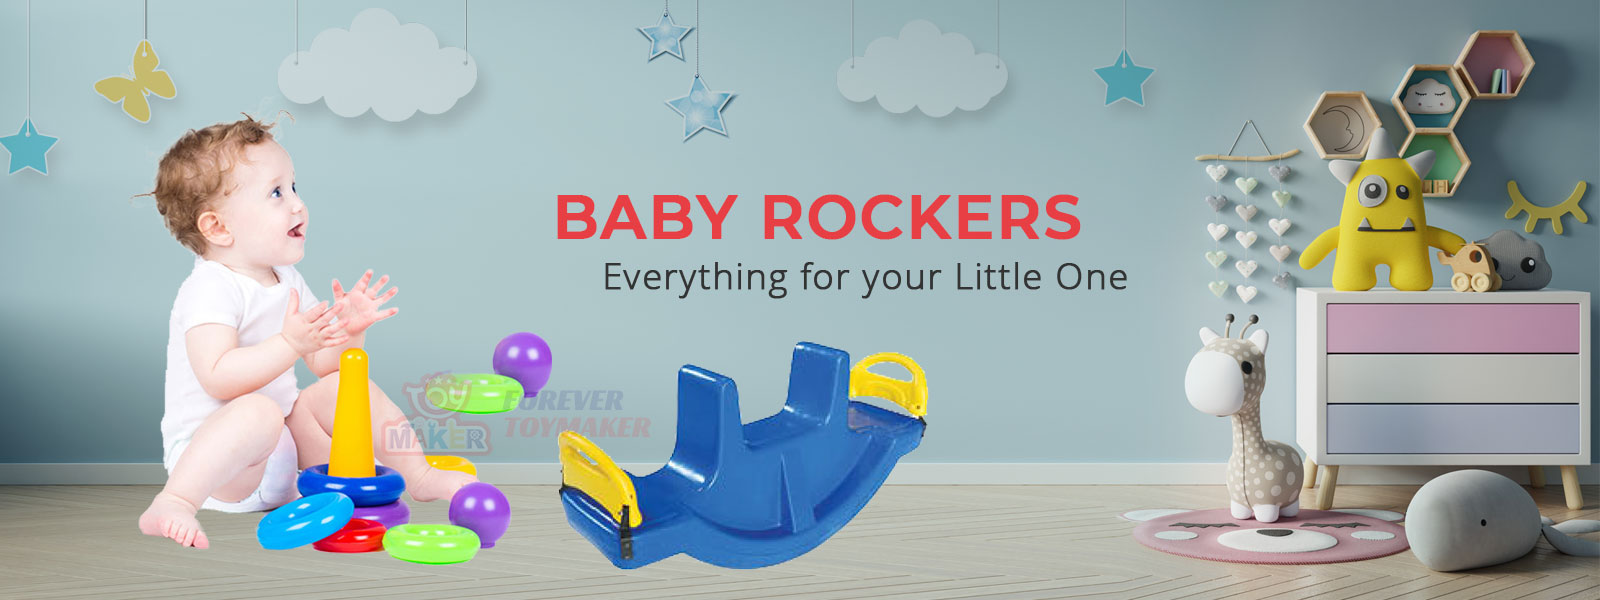 Baby Rockers Manufacturers in Cuttack